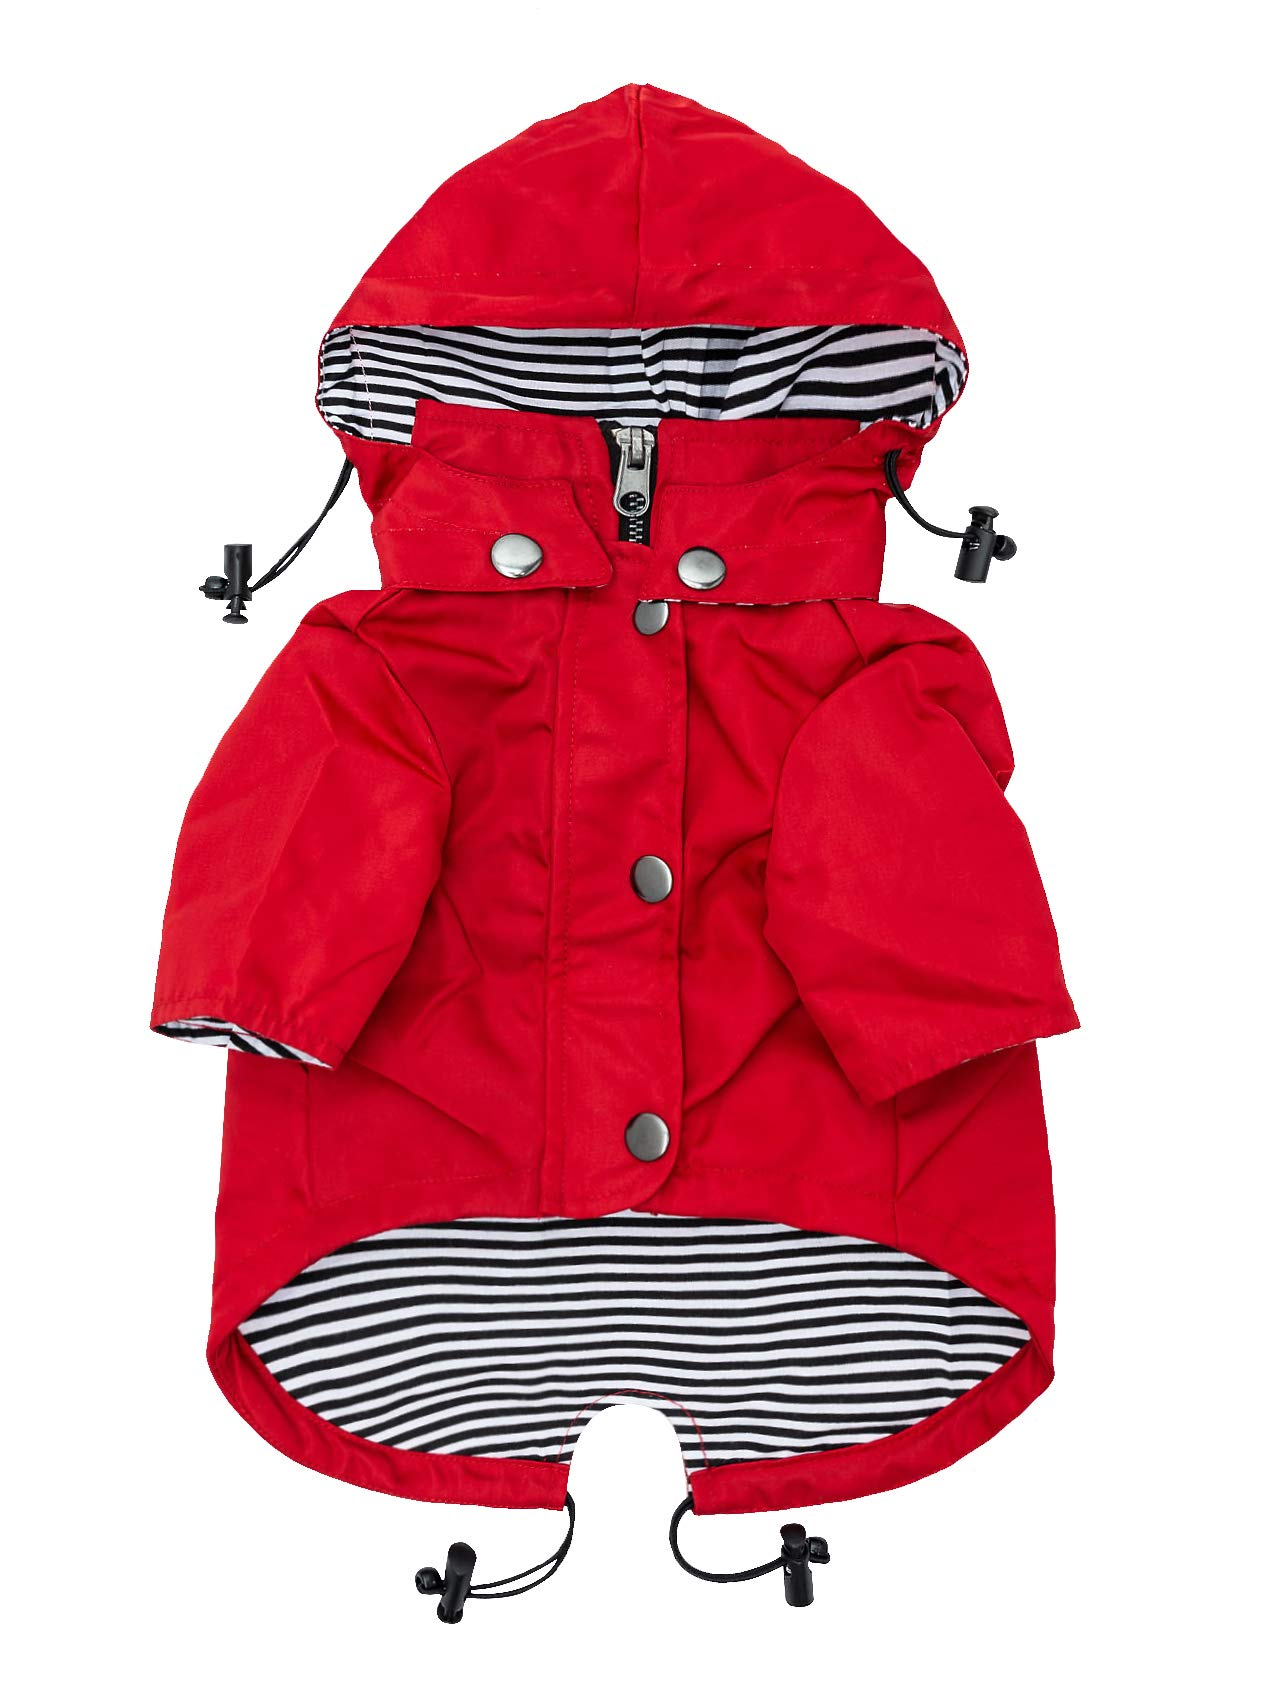 Ellie Dog Wear Red Zip Up Dog Raincoat with Reflective Buttons, Pockets, Water Resistant, Adjustable Drawstring, Removable Hoodie - Size XS to XXL Available - Stylish Premium Dog Raincoats (XL)